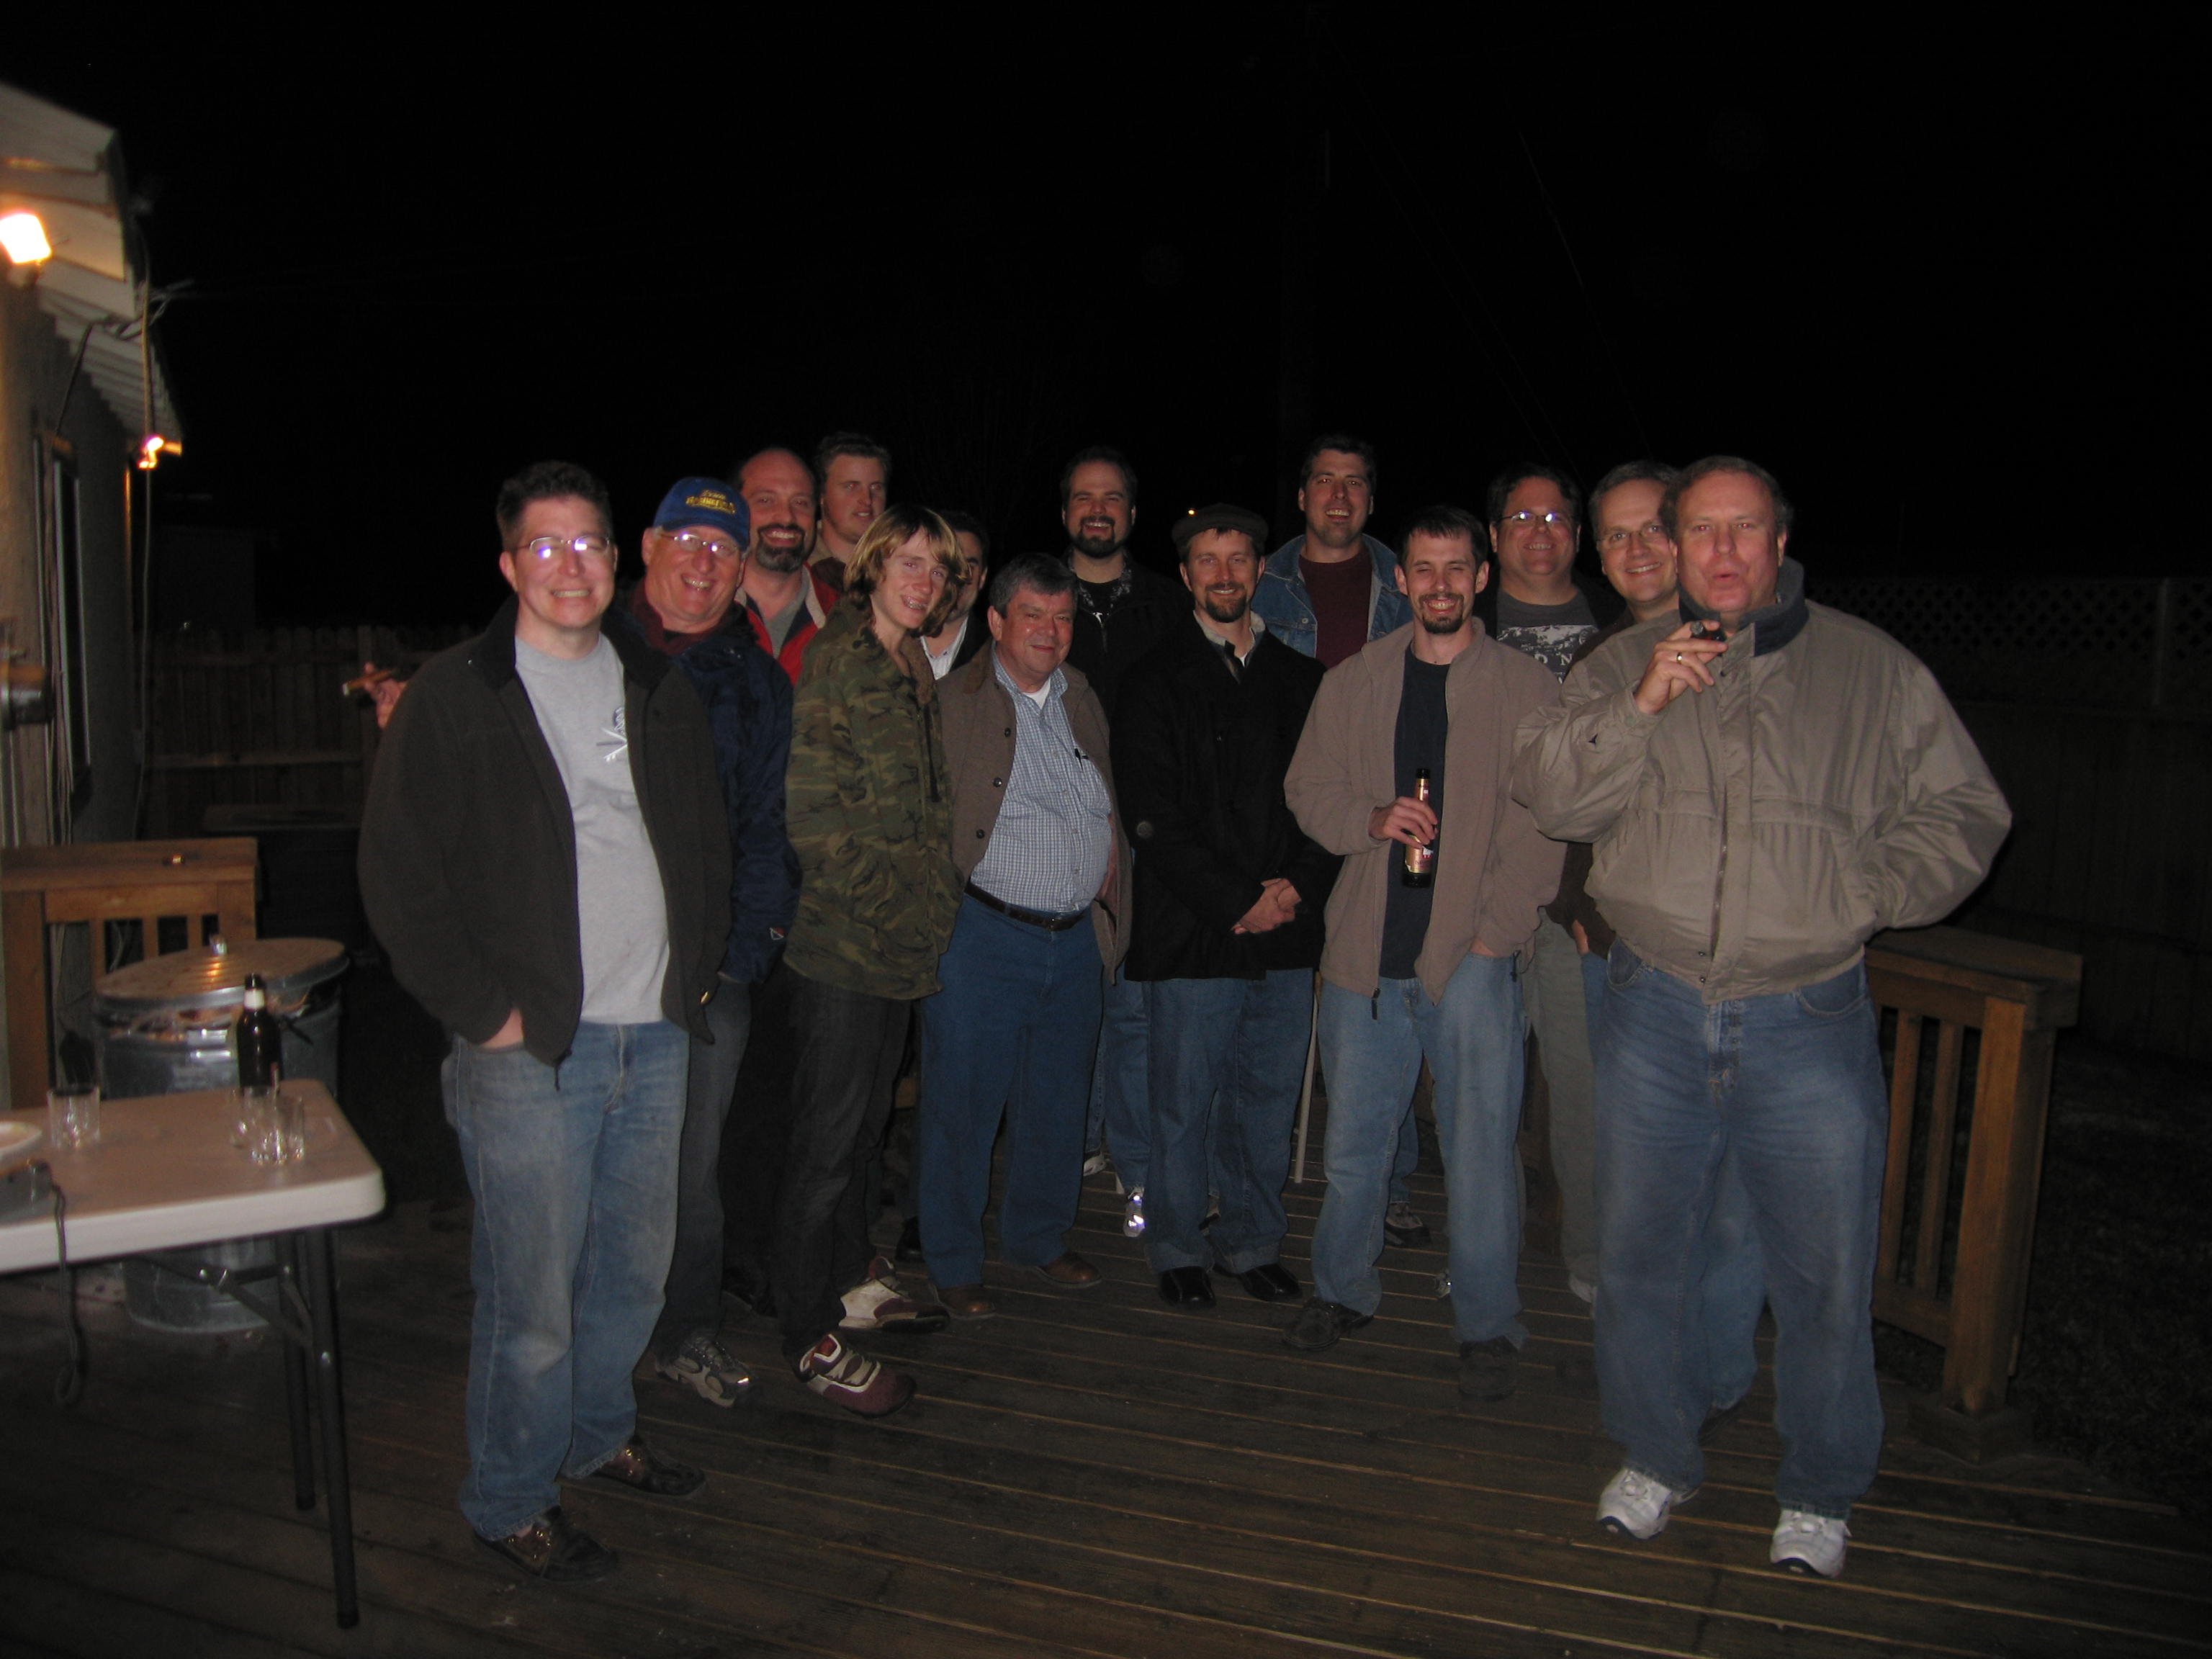 All Guys on deck 1517 legacy participants